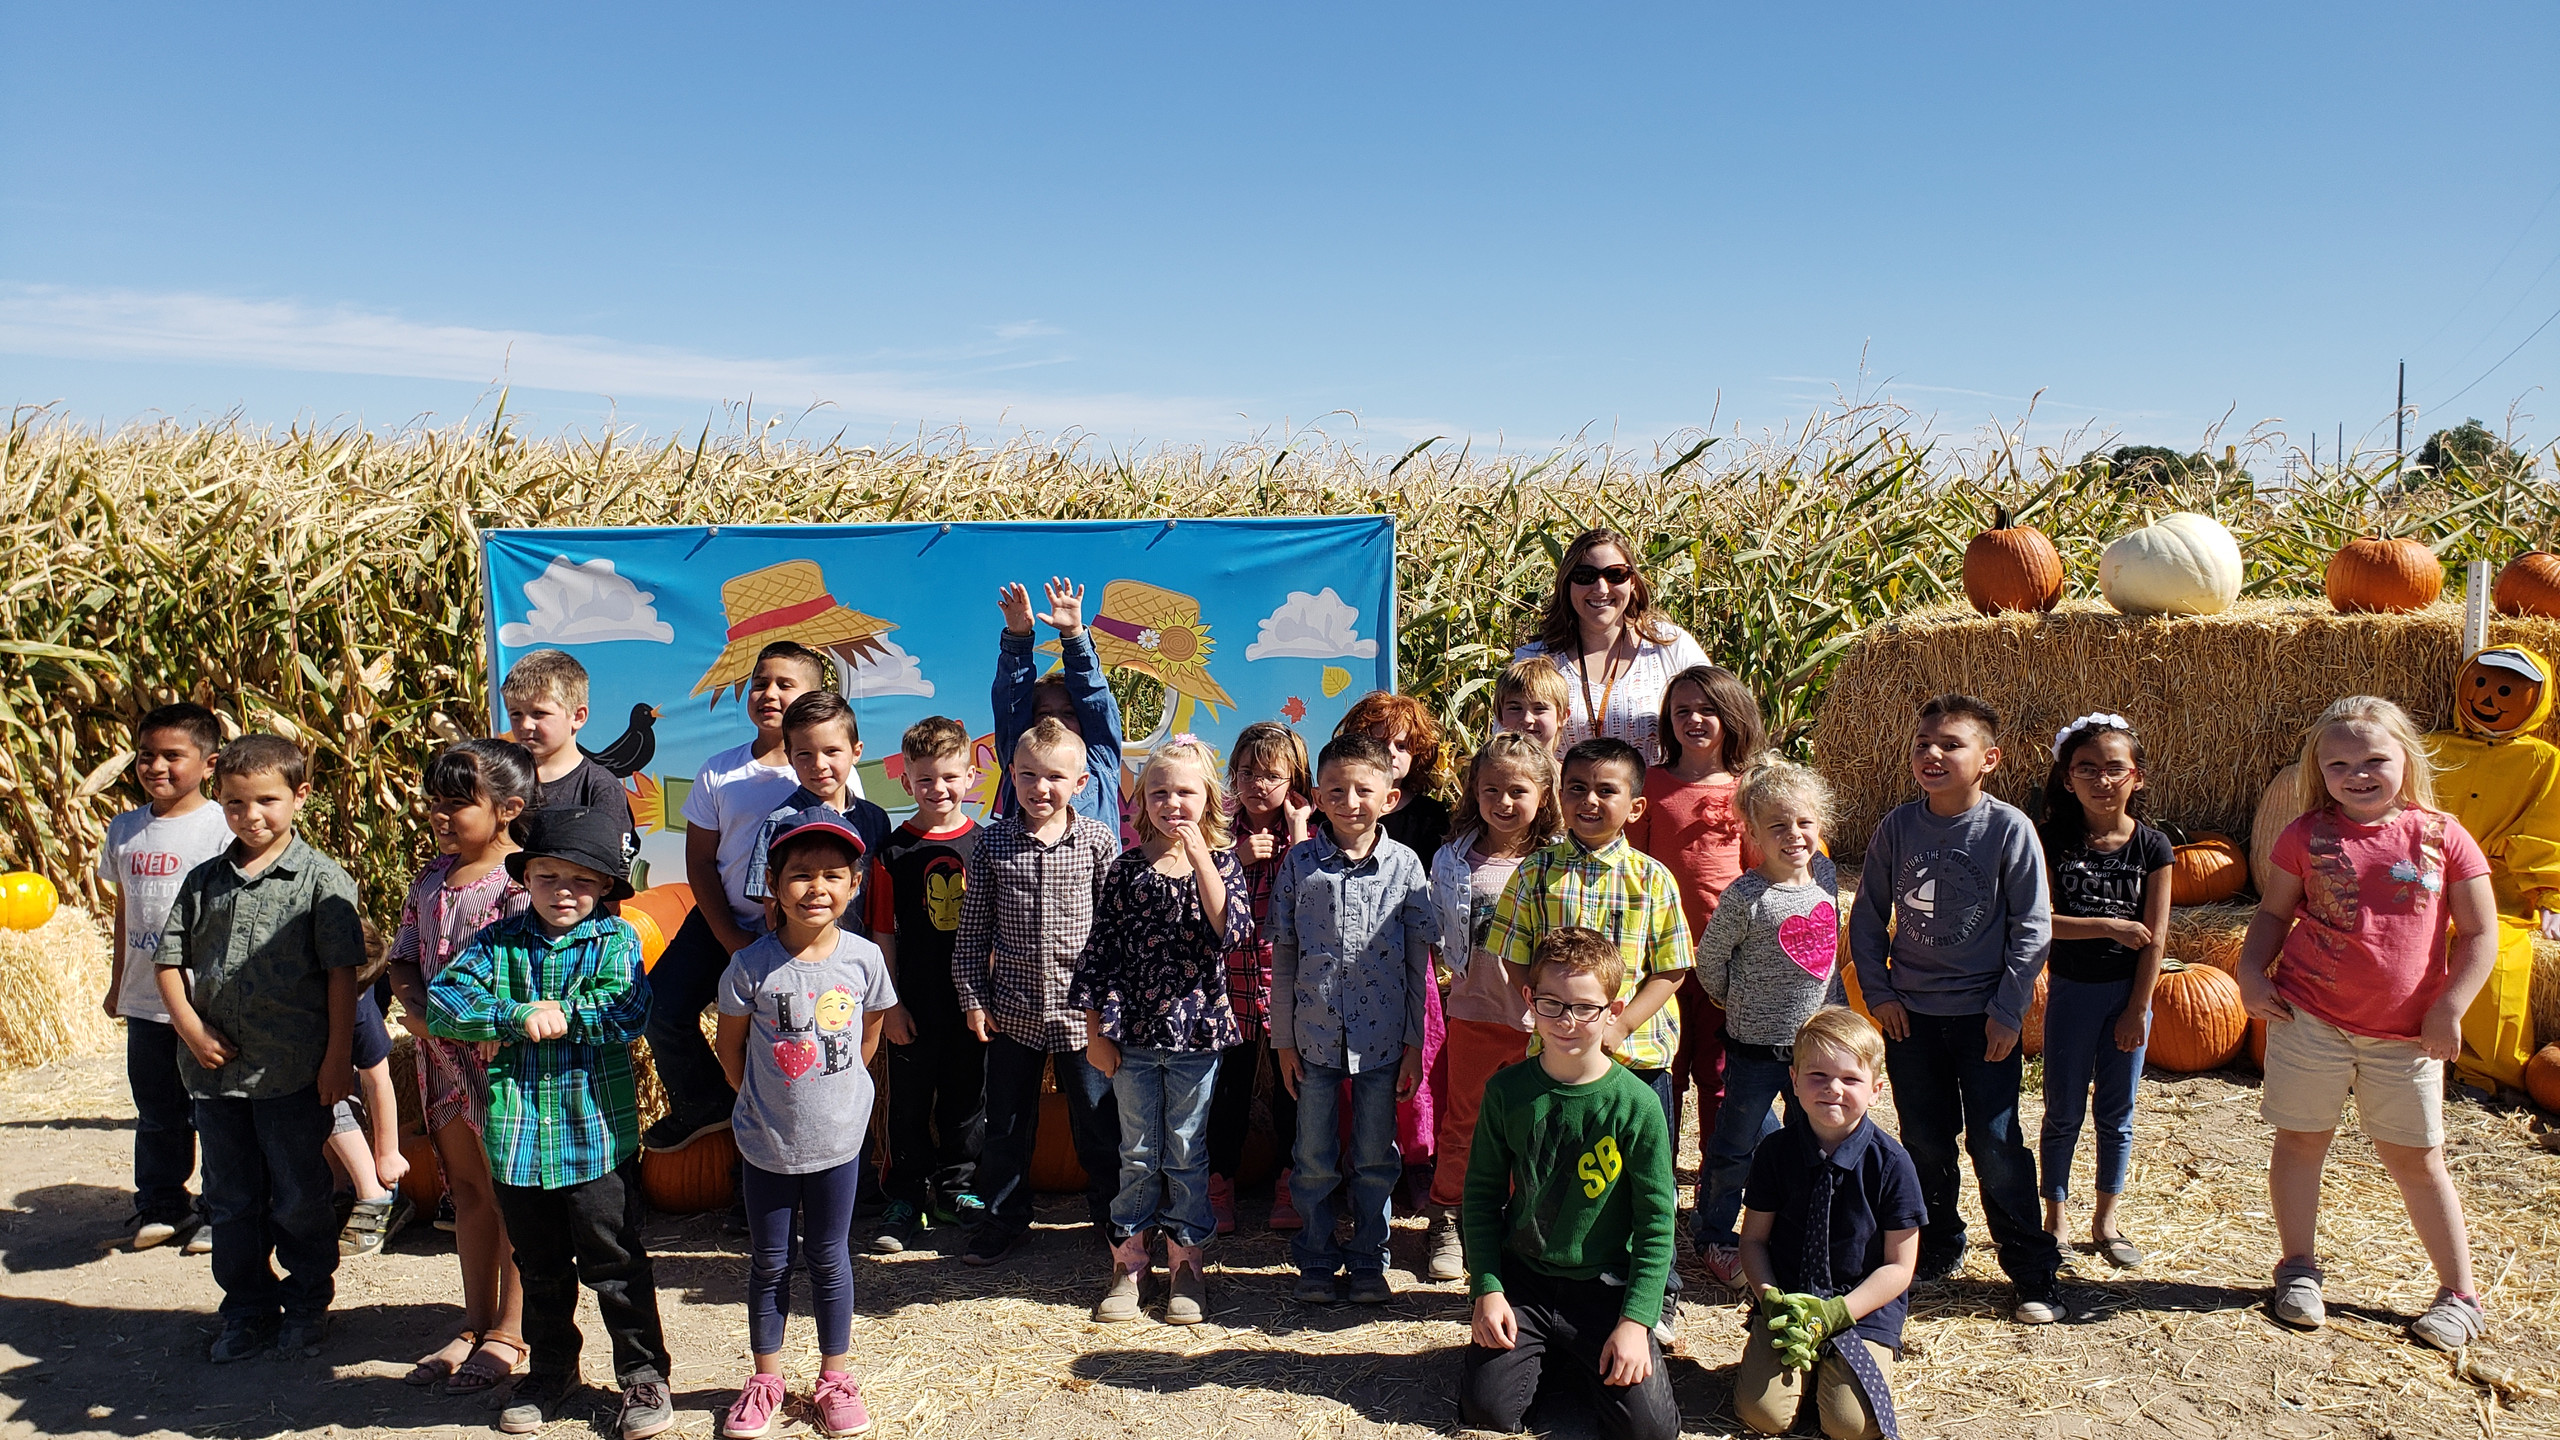 PES Students smile for the camera on their visit to the Buhl Pumpkin Patch.